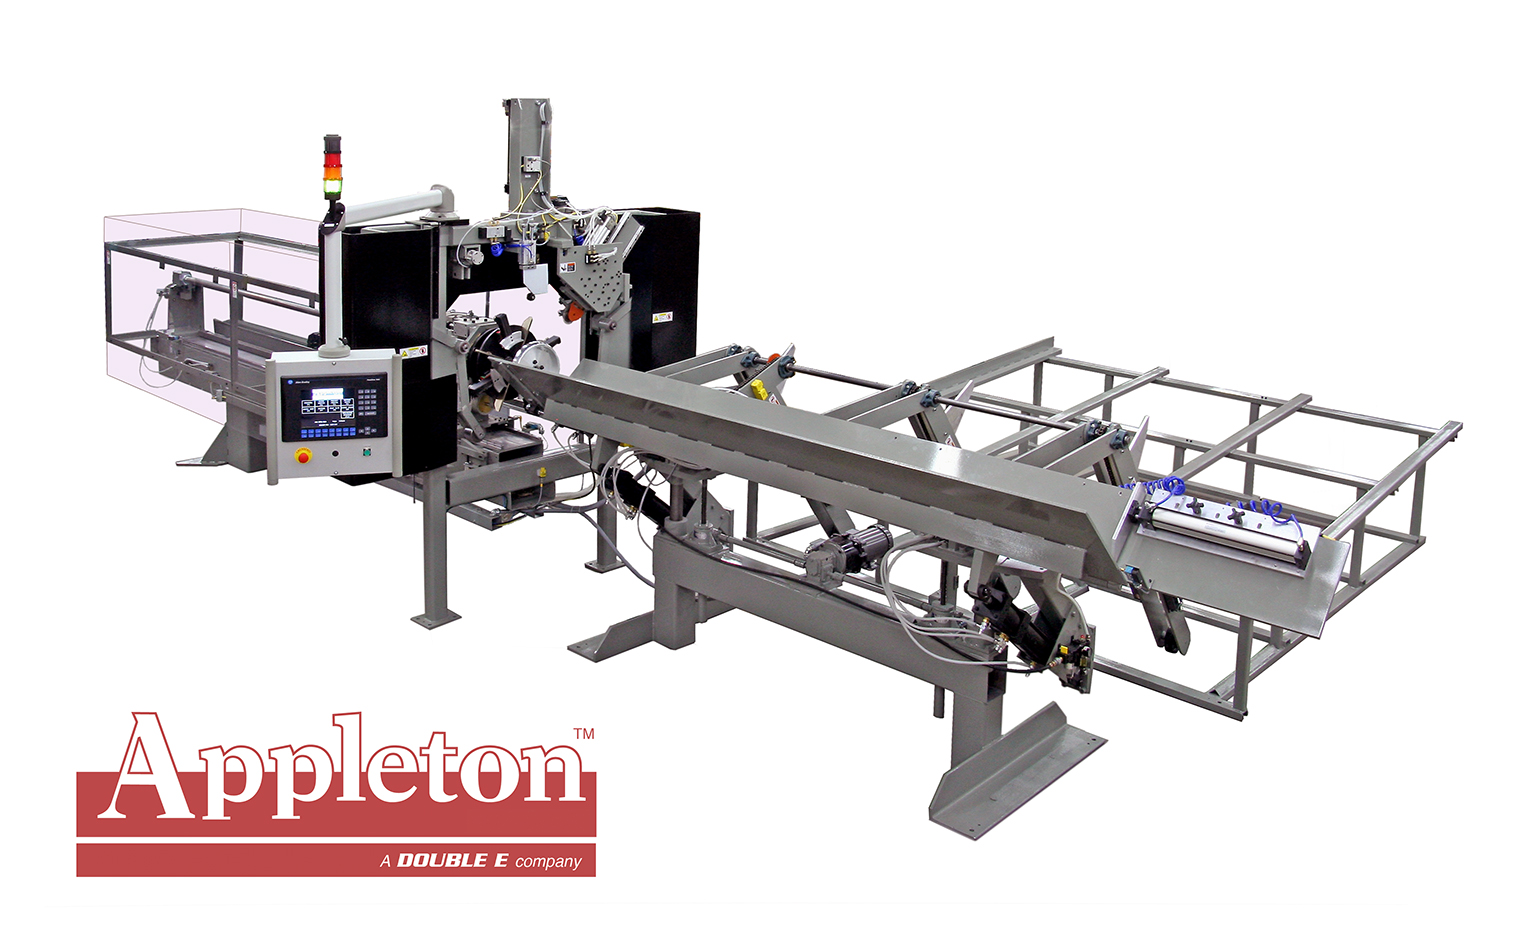 Appleton P610 Programmable Core Cutters